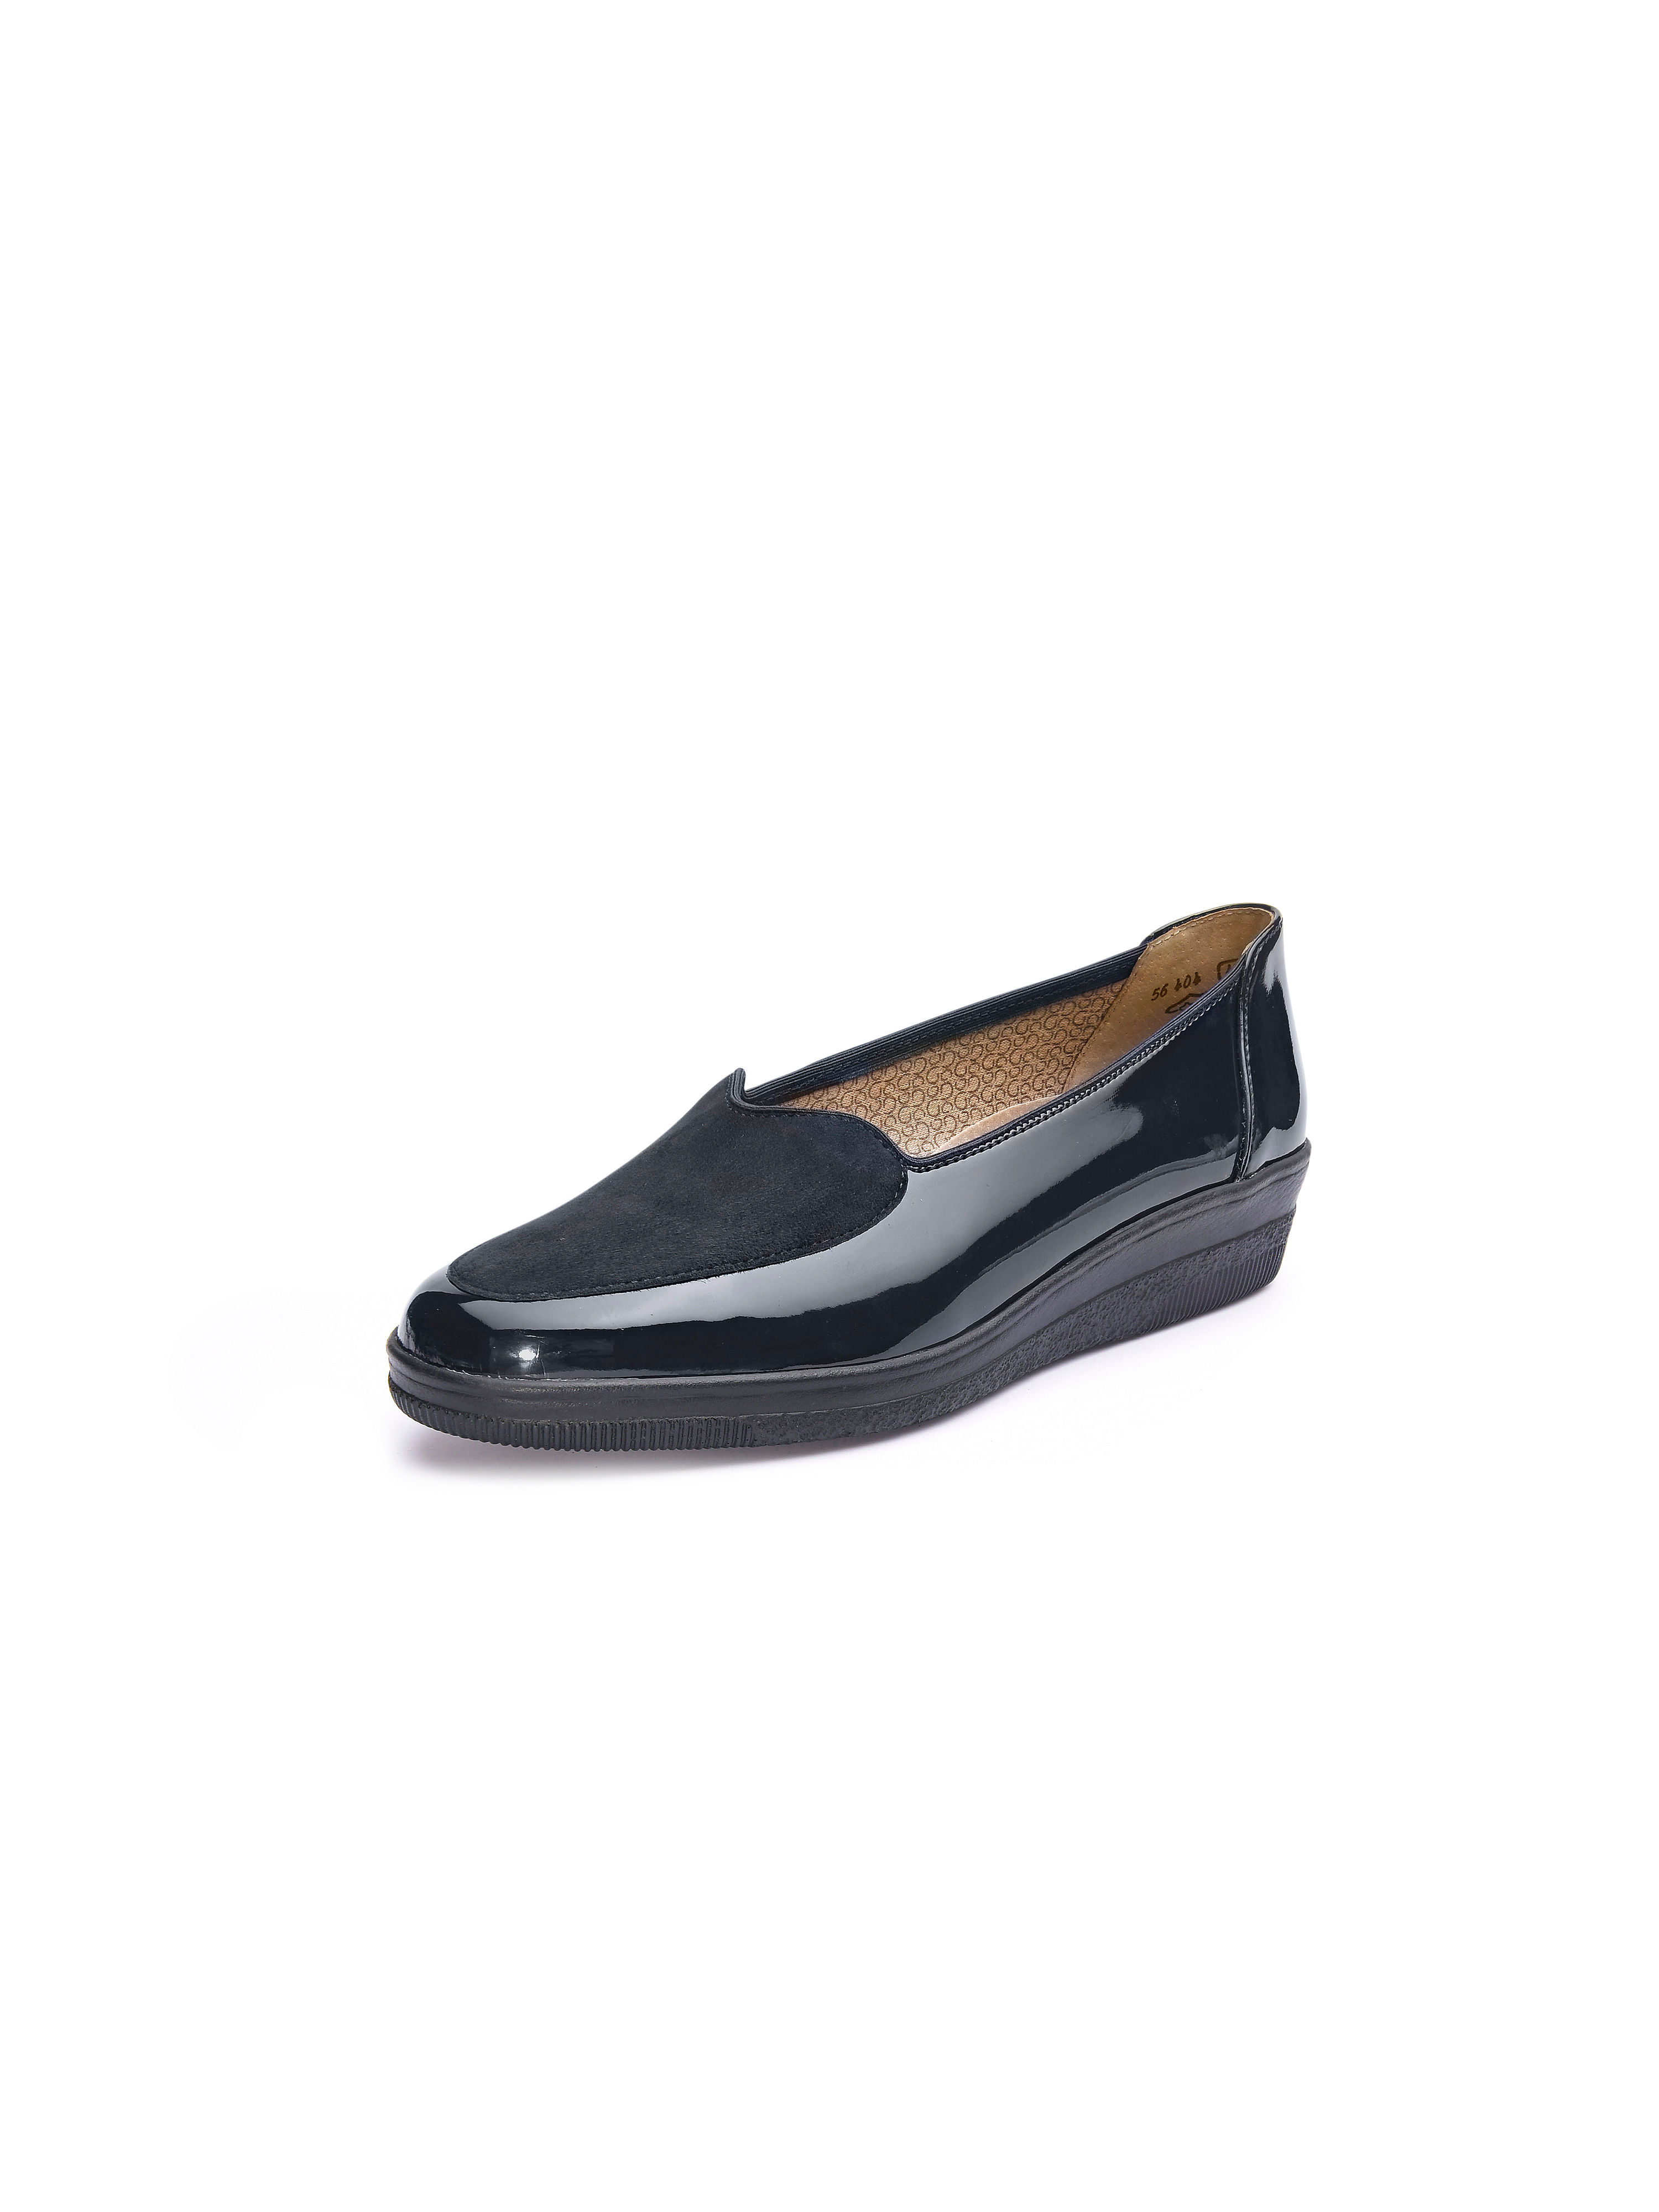 loafers-by-gabor-from-gabor-blue